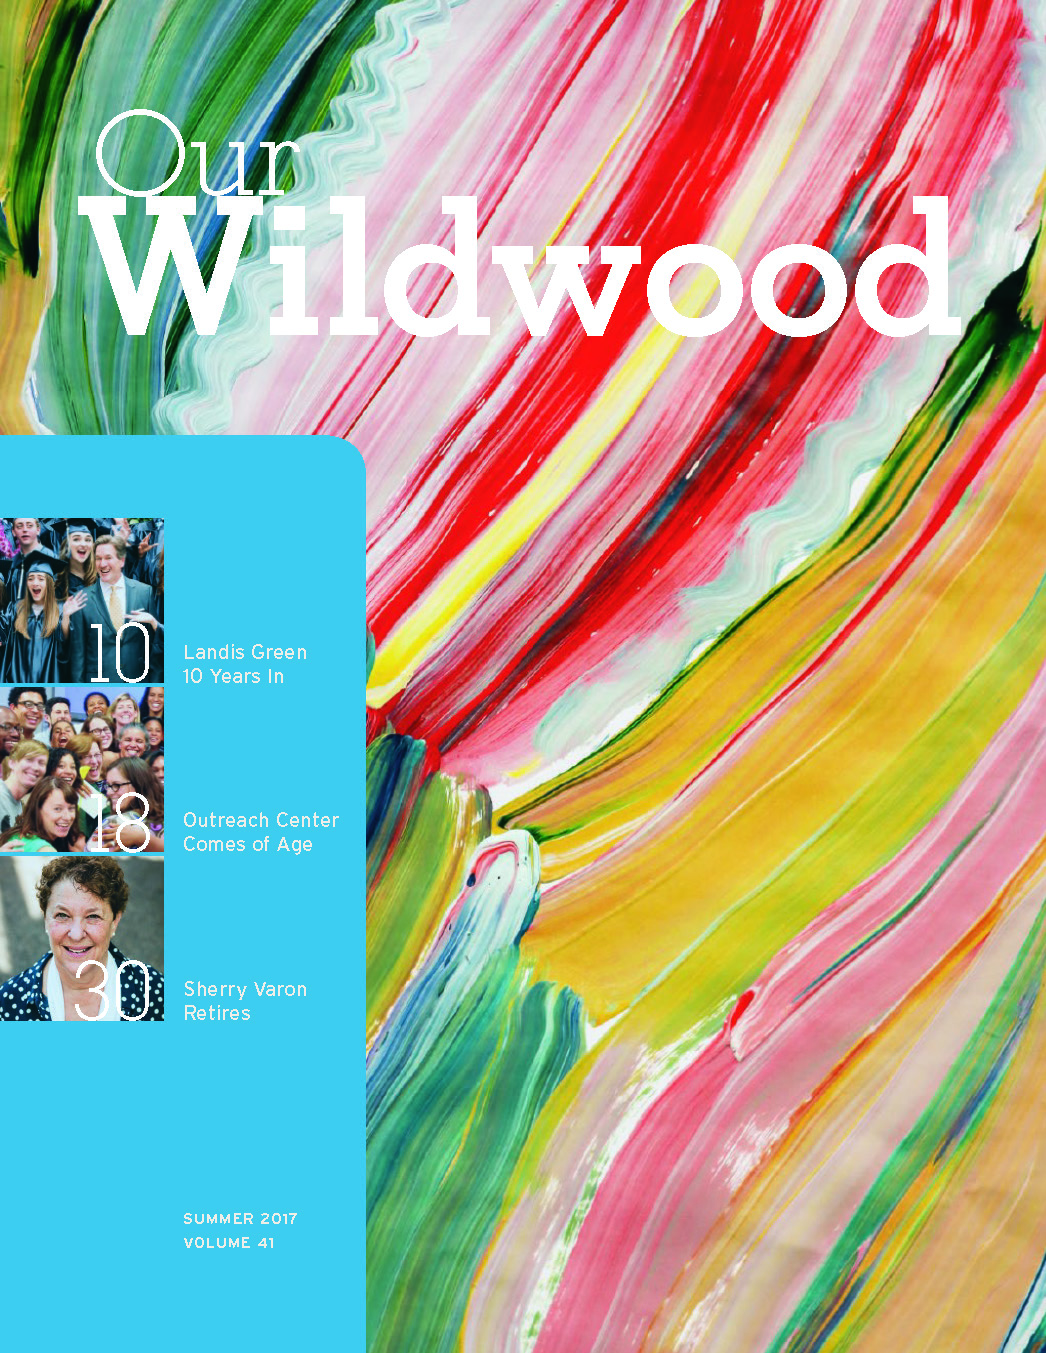 Wildwood School, Our Wildwood Volume 41